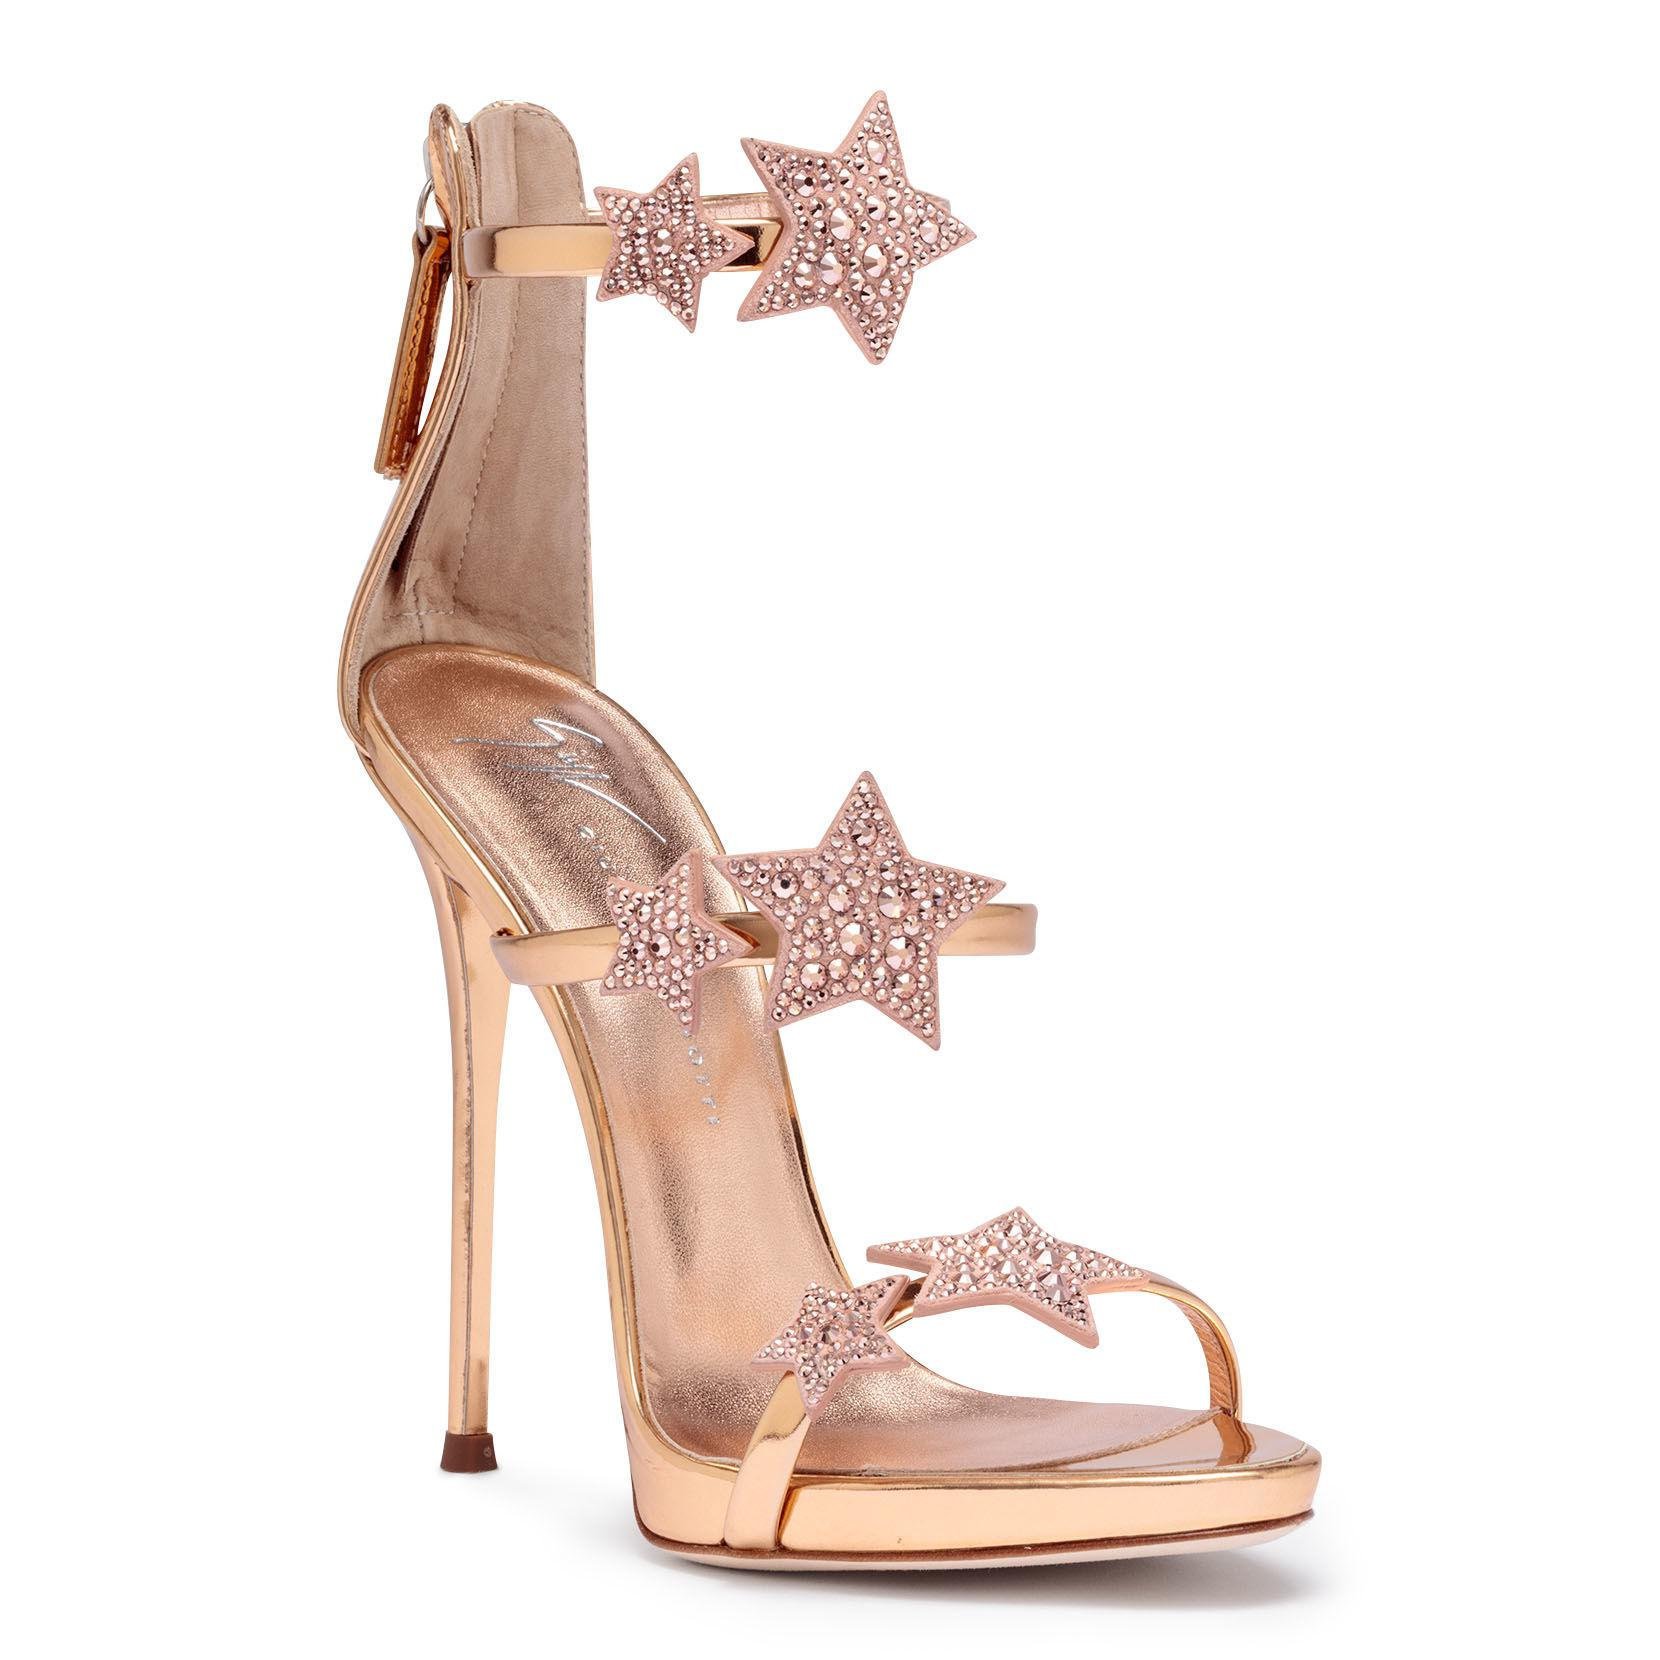 c79522e5902 Women's Pink Harmony Star 120 Rose Gold Leather Sandals